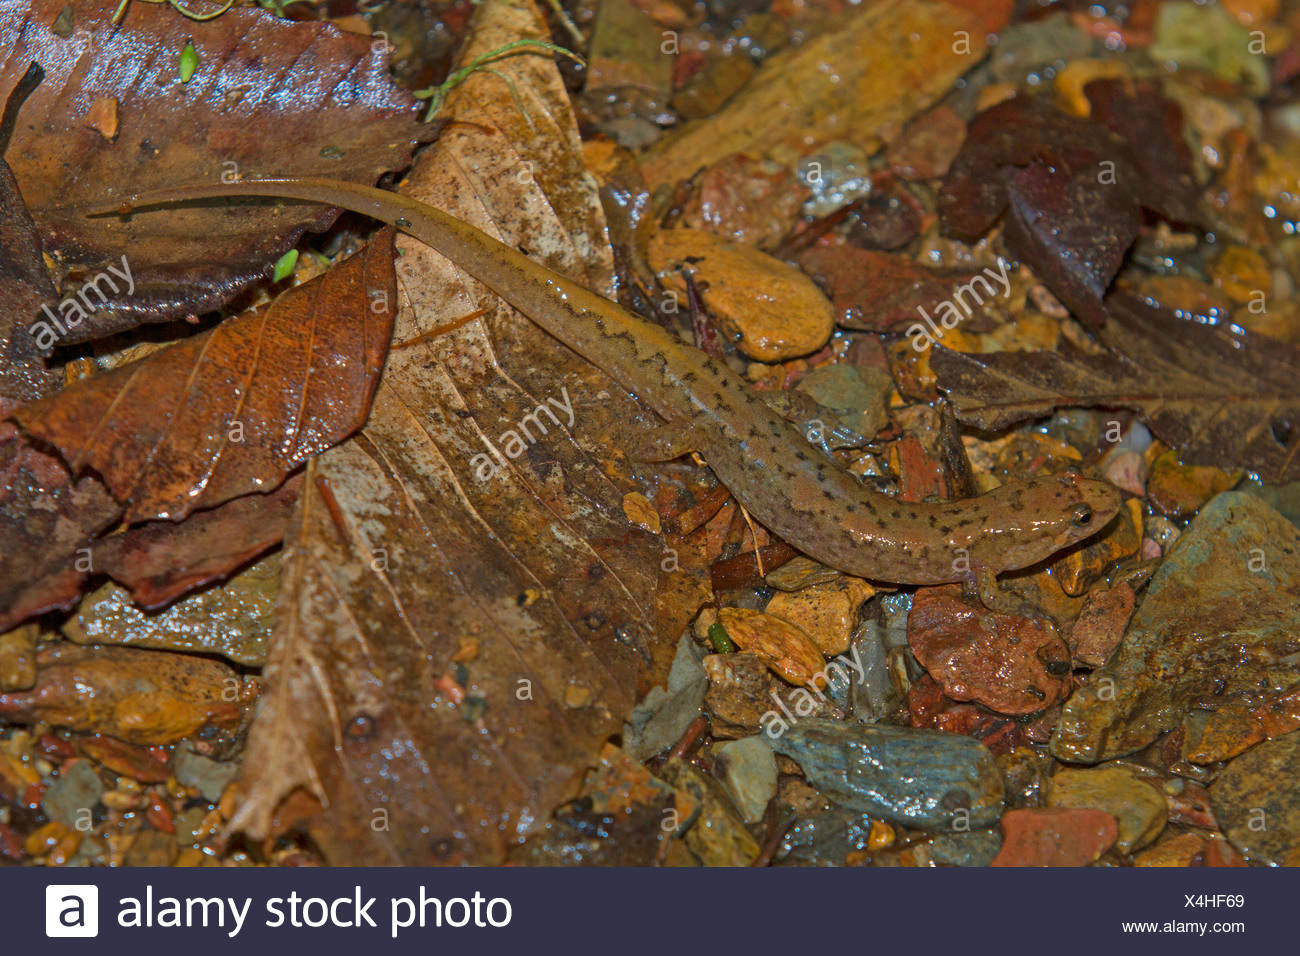 Seepage salamander  (cf. Desmognathus aeneus), on wet forest floor, USA, Tennessee, Great Smoky Mountains National Park - Stock Image